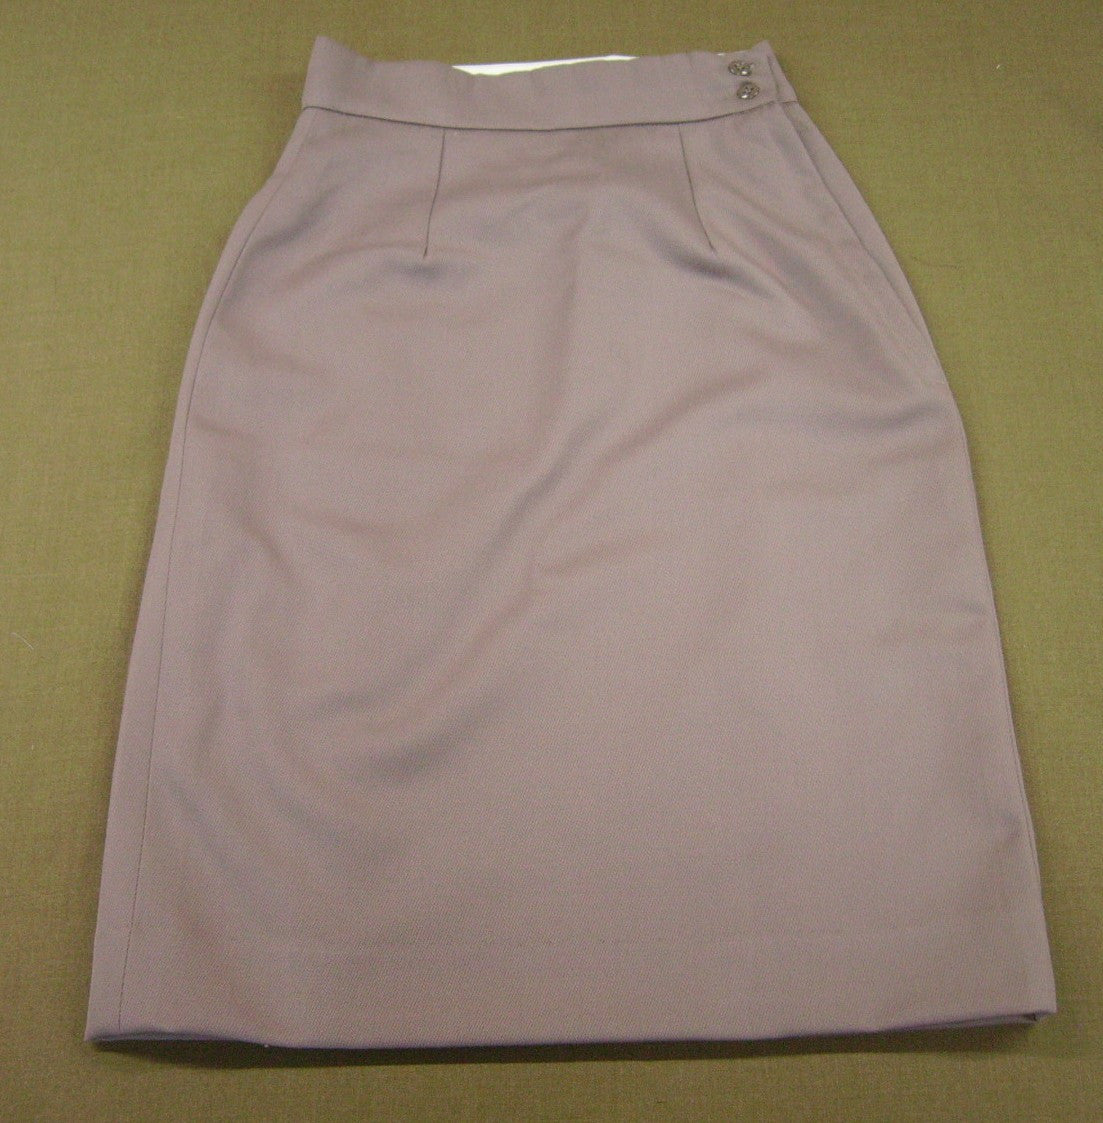 Skirt, Pink, Women's (TAMU, new) CLOSEOUT sold as-is. All sales final.